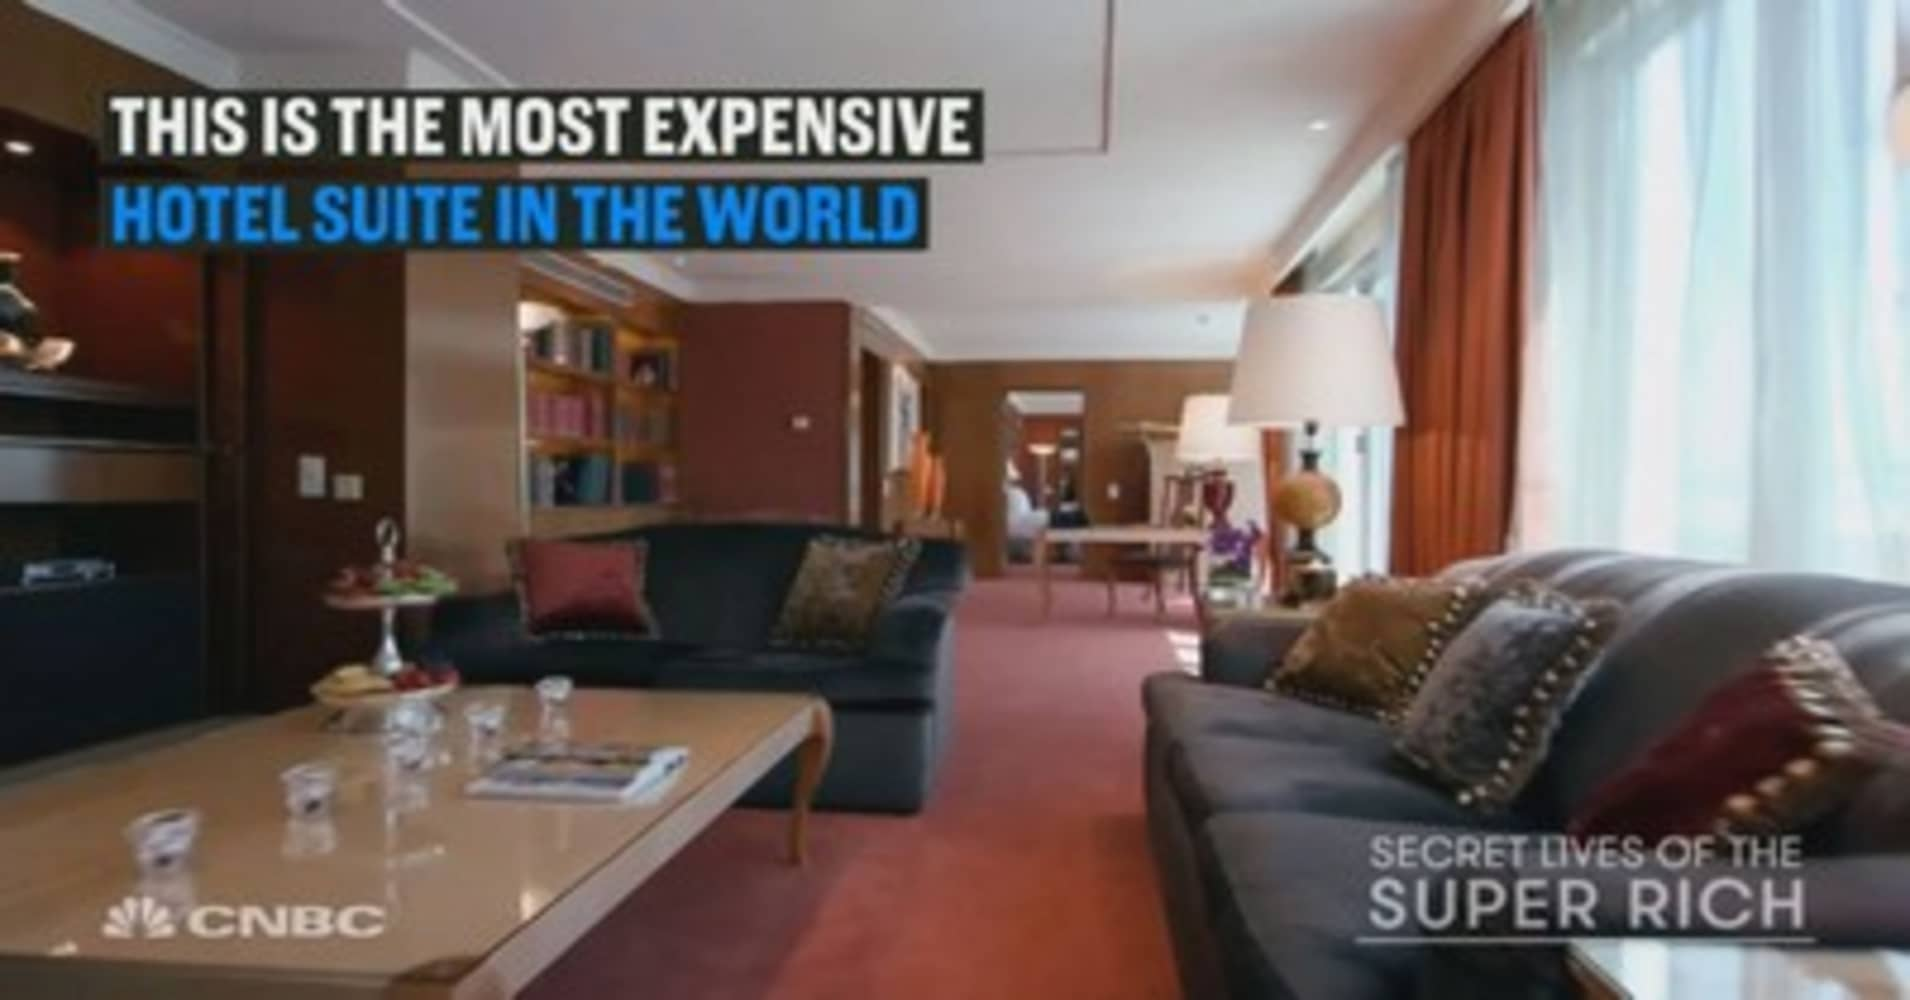 the most expensive hotel suite in the world